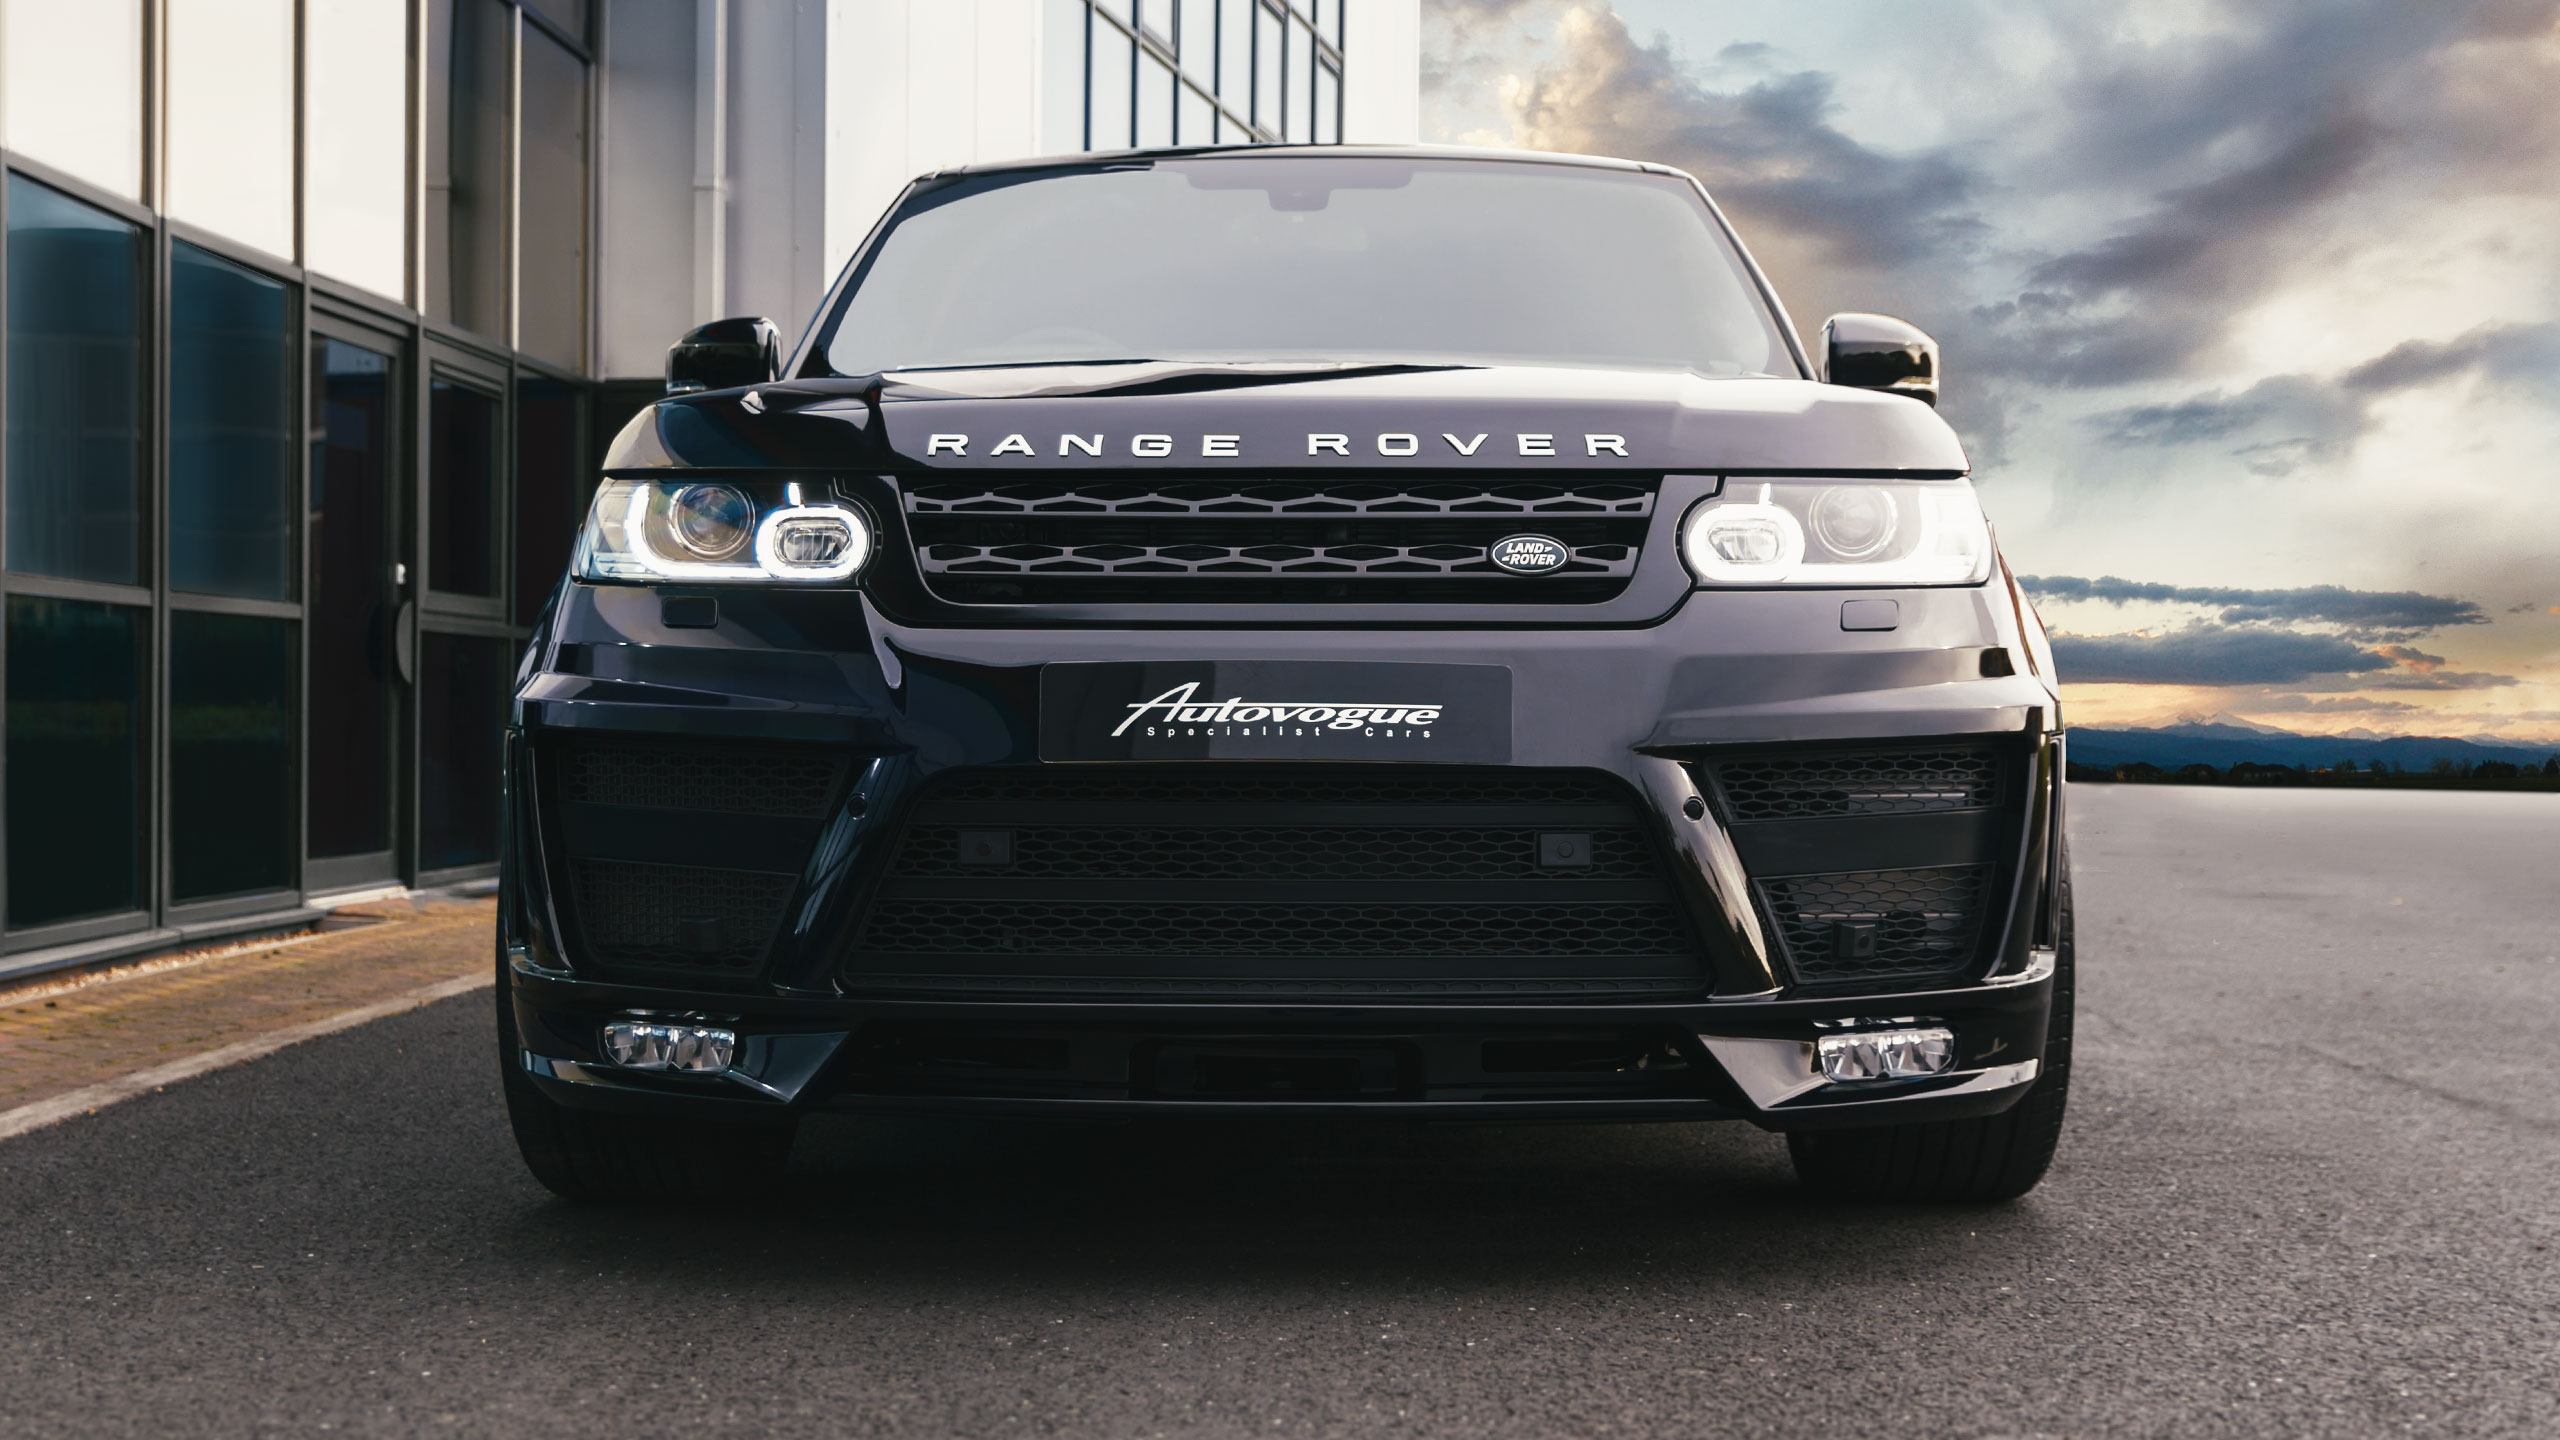 Range-Rover-Front-Front